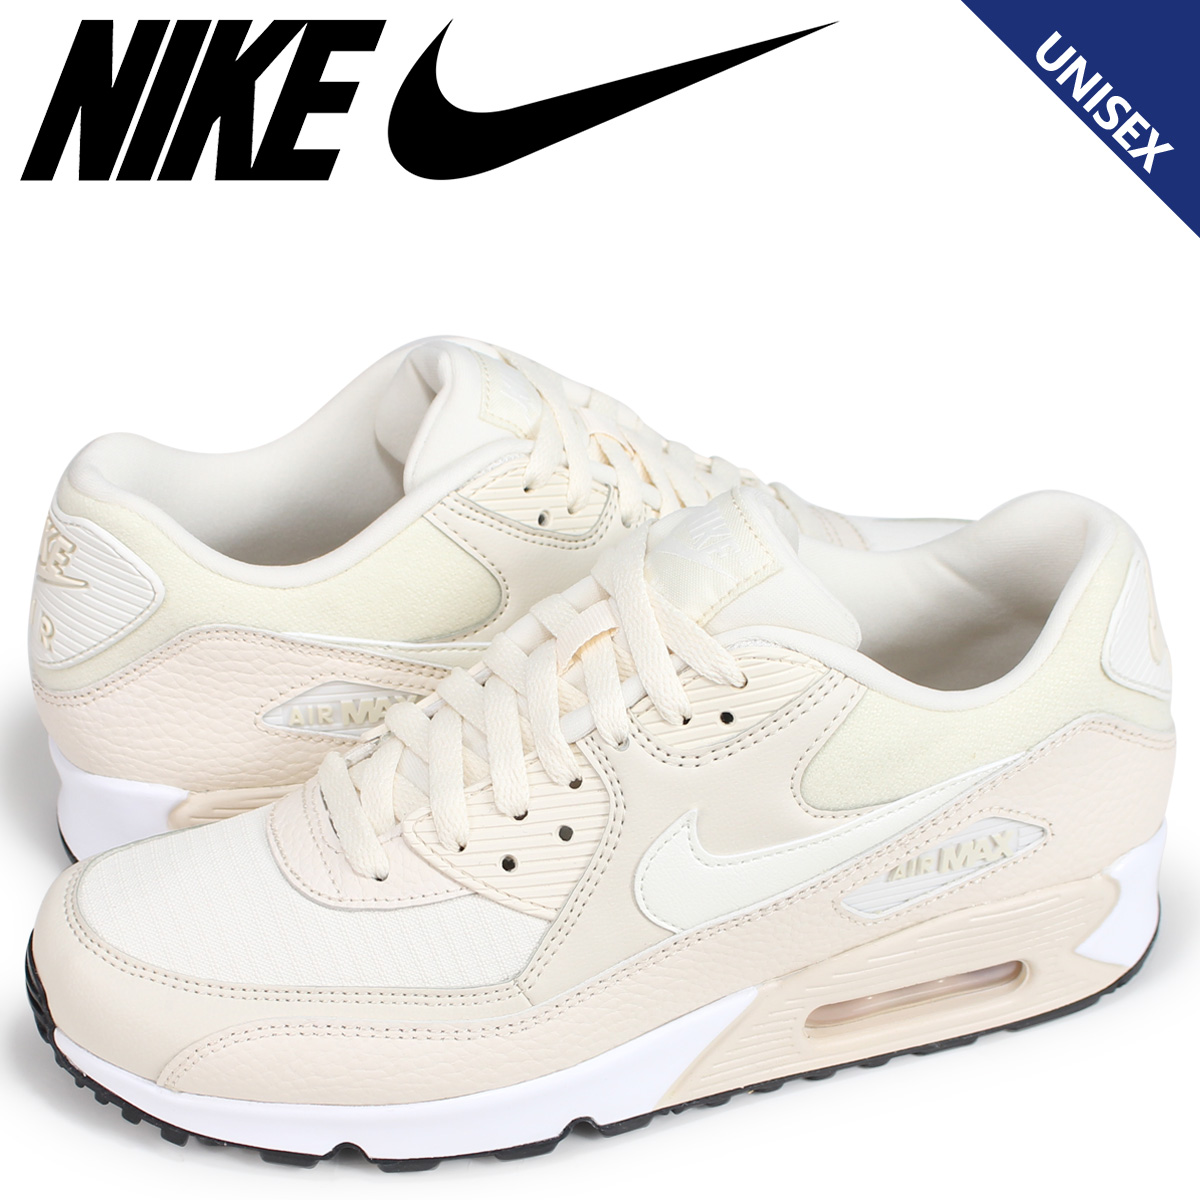 new concept b882c 69319 Nike NIKE Air Max 90 lady's men's sneakers WMNS AIR MAX 90 325,213-213 beige